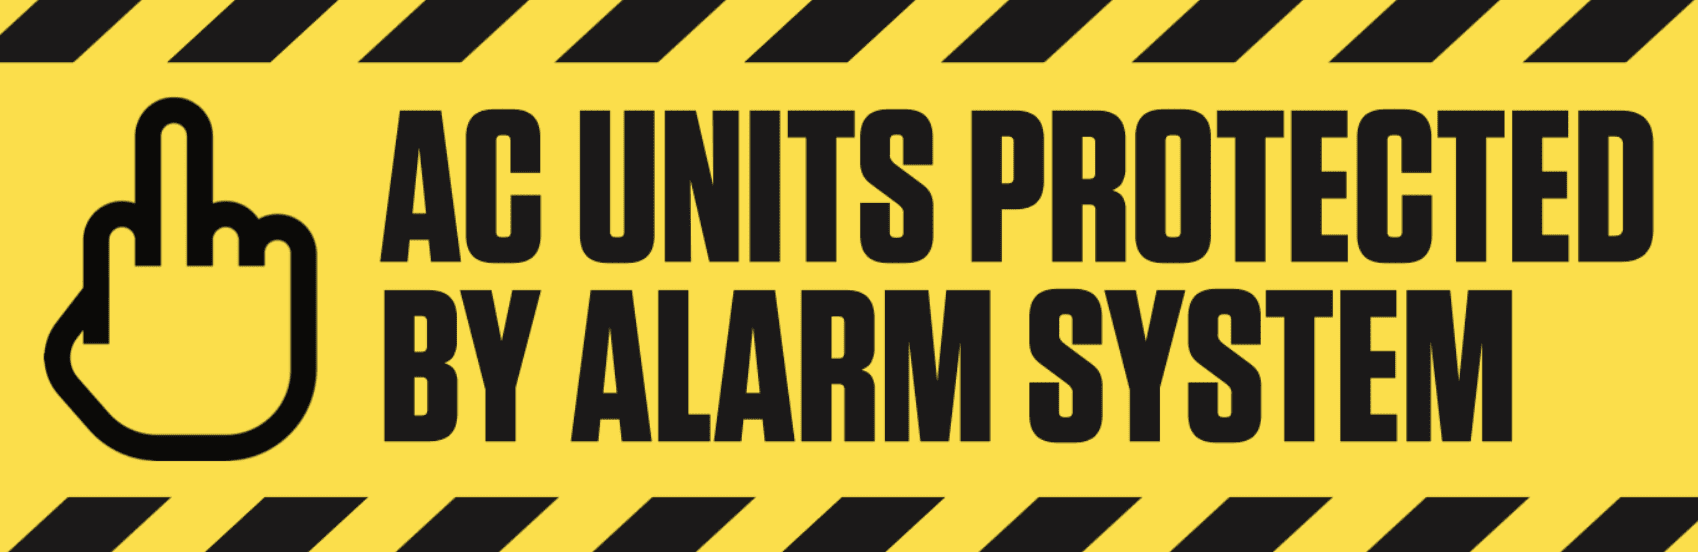 Yellow warning sign the says AC Units protected by alarm system